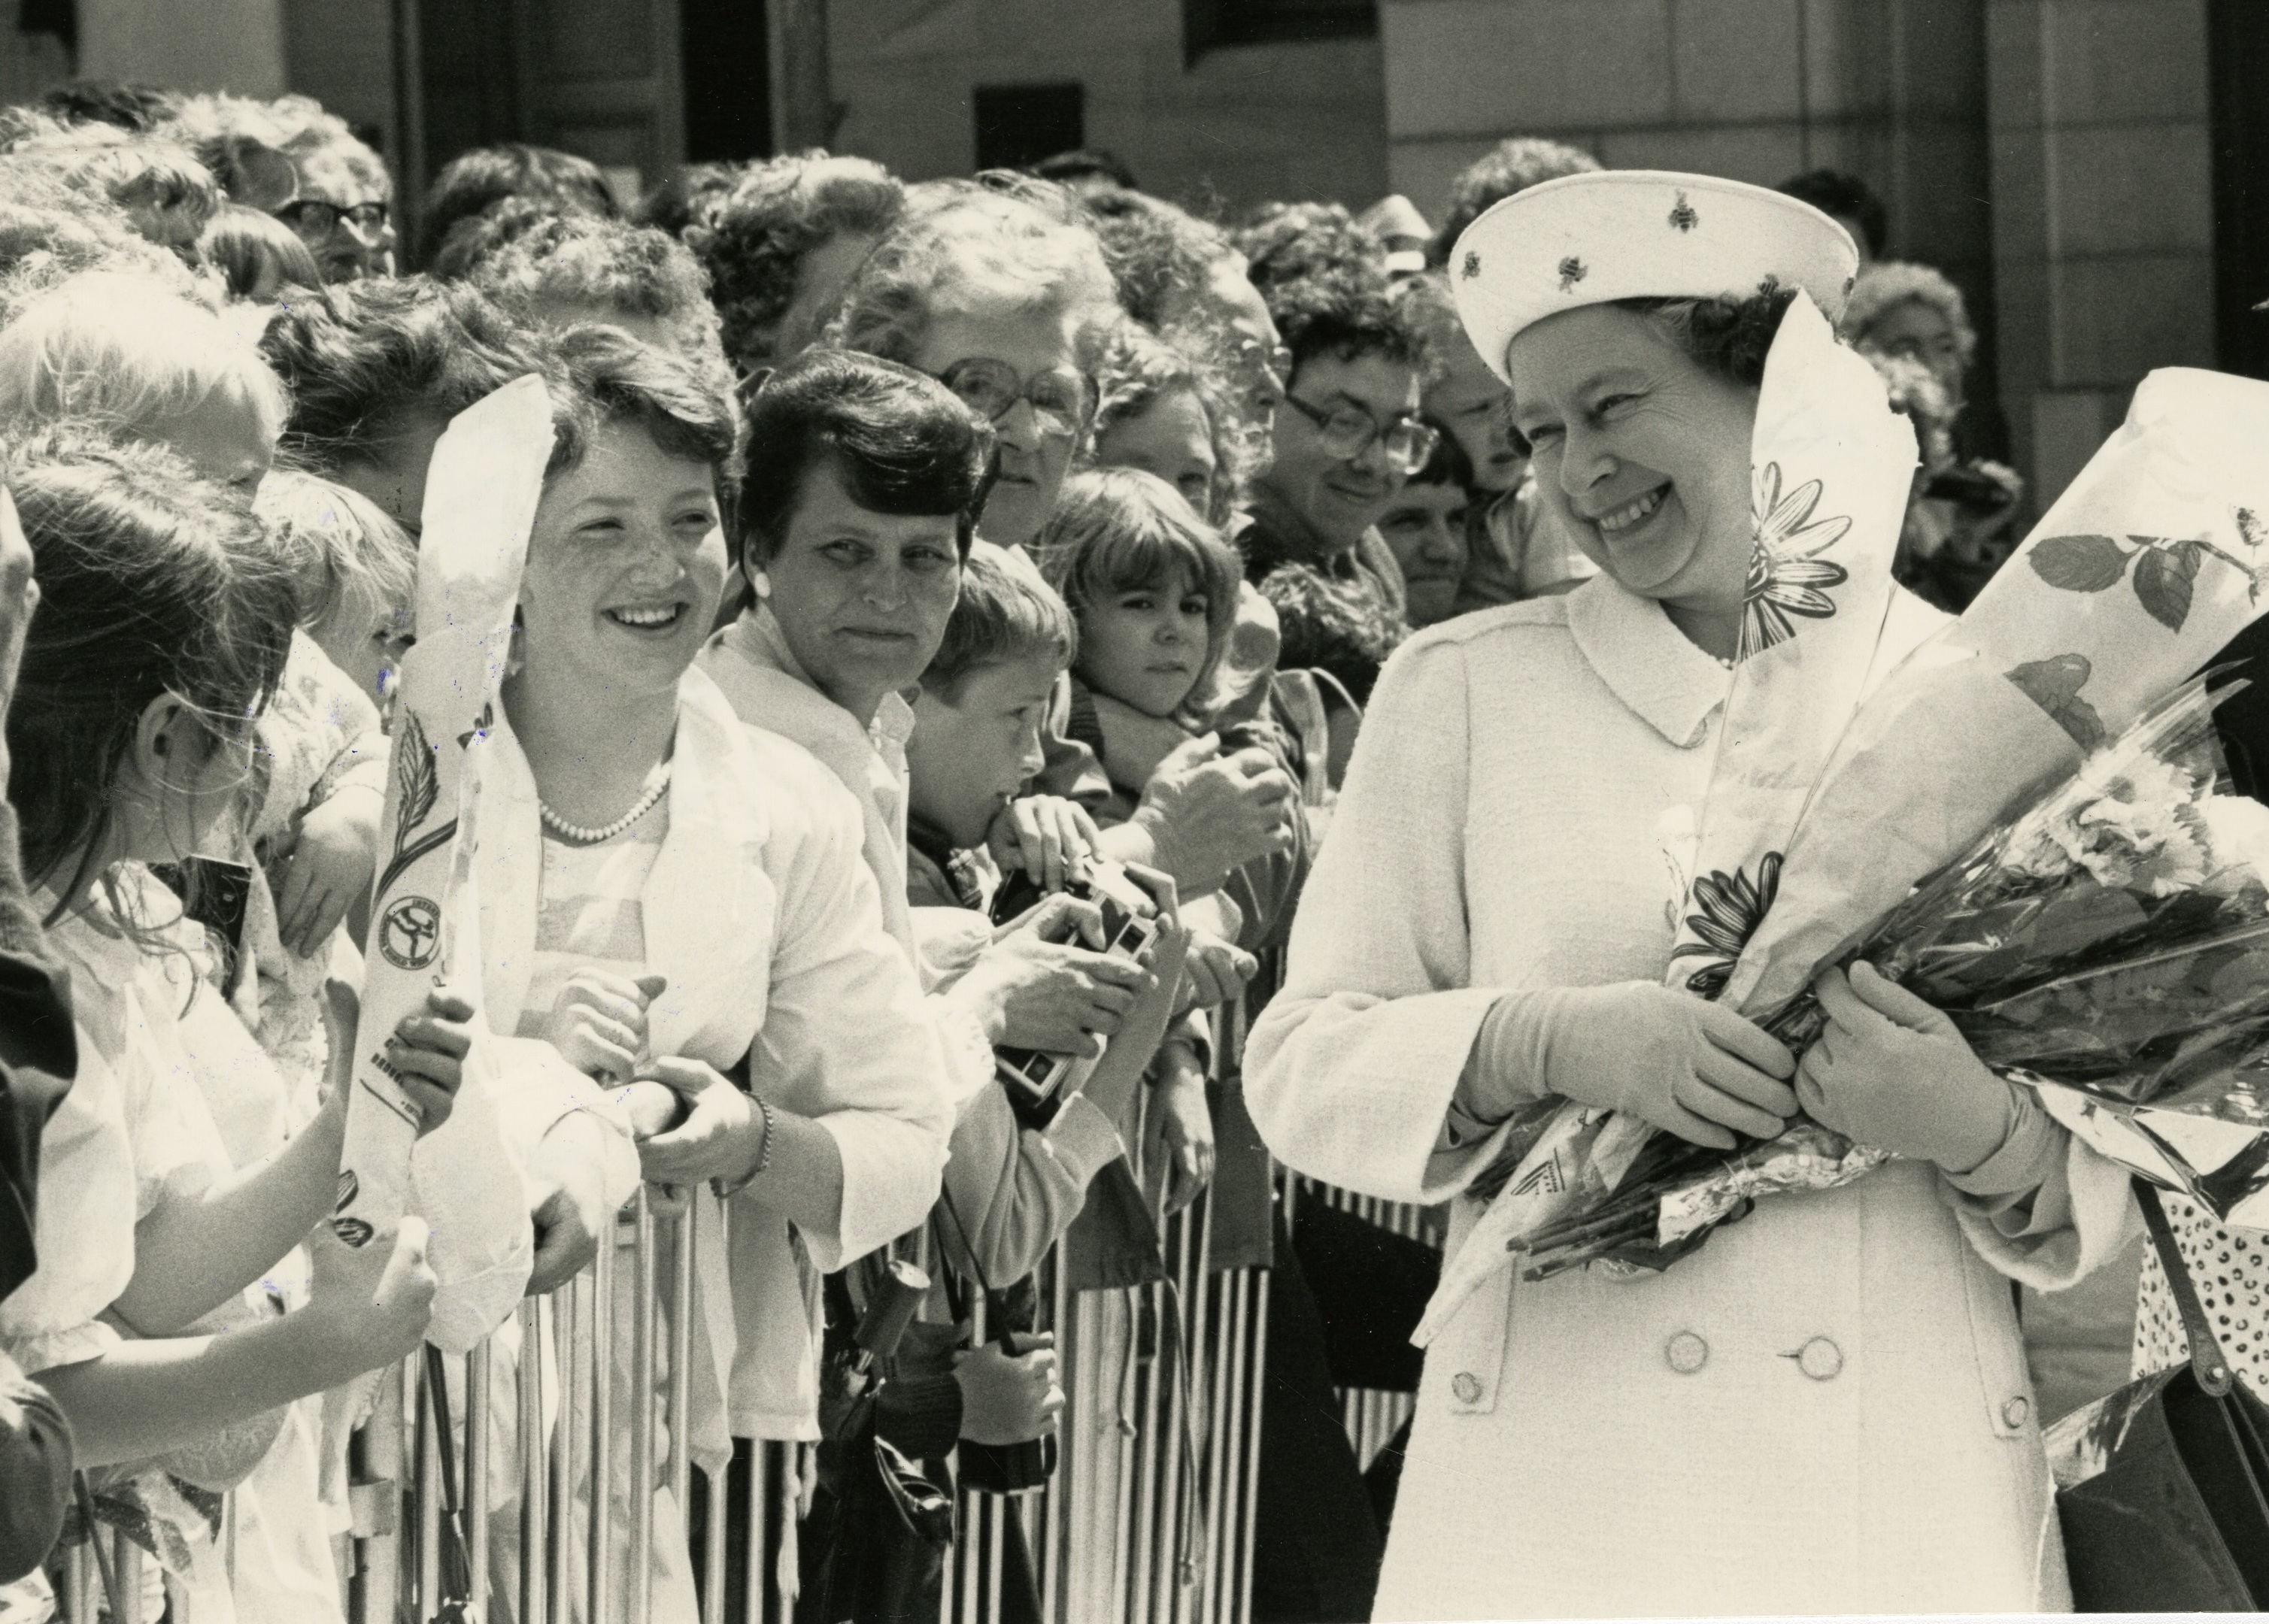 The Queen during a visit to Dundee in 1987.